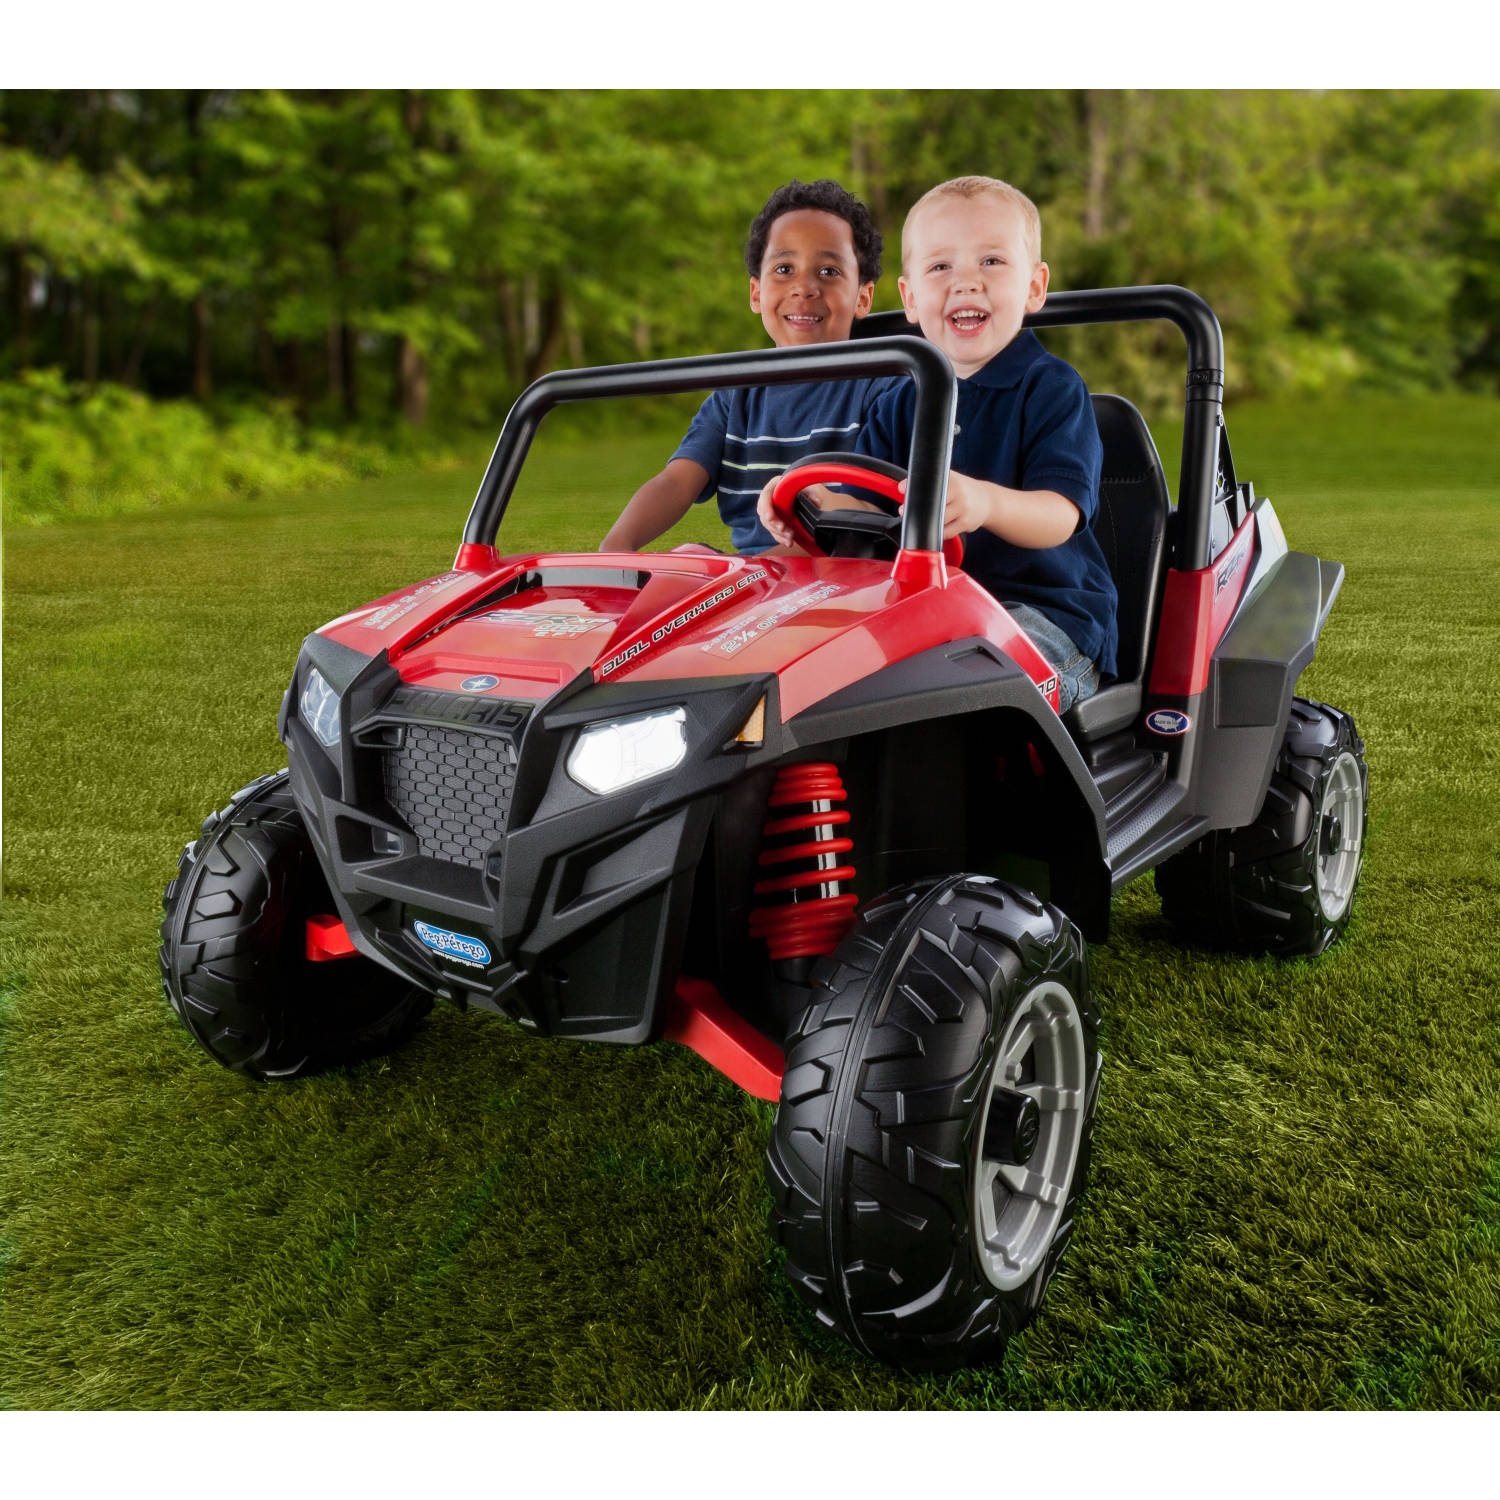 buggy ranger rzr 900 12 volts de peg perego. Black Bedroom Furniture Sets. Home Design Ideas